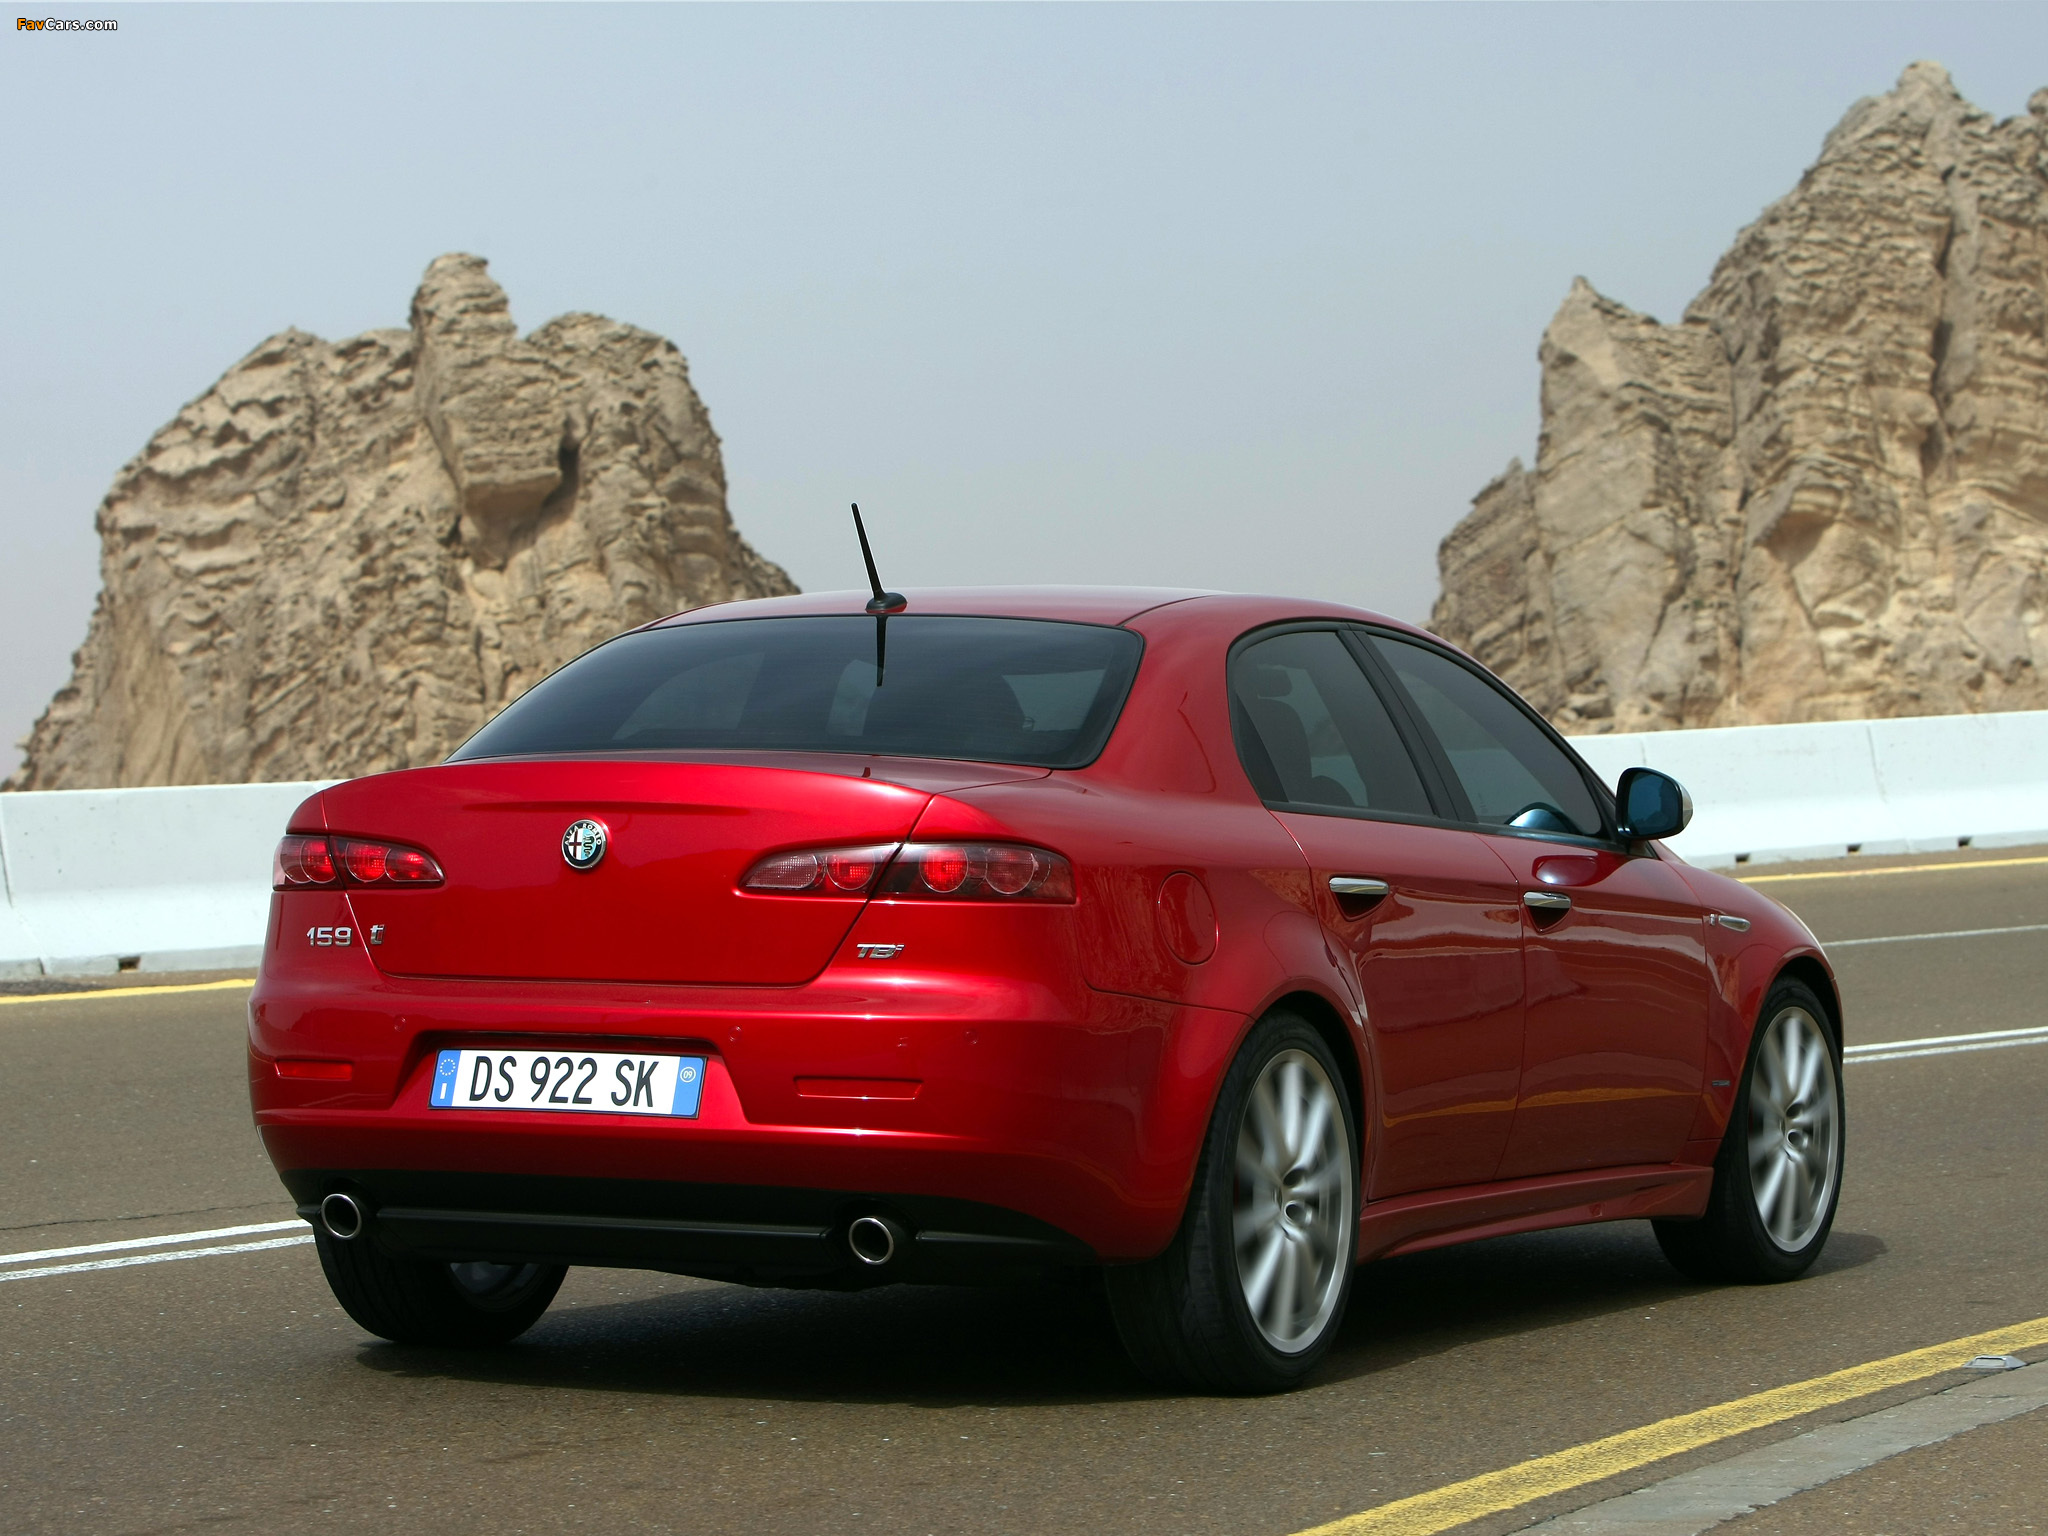 Alfa Romeo 159 2008 photo - 3